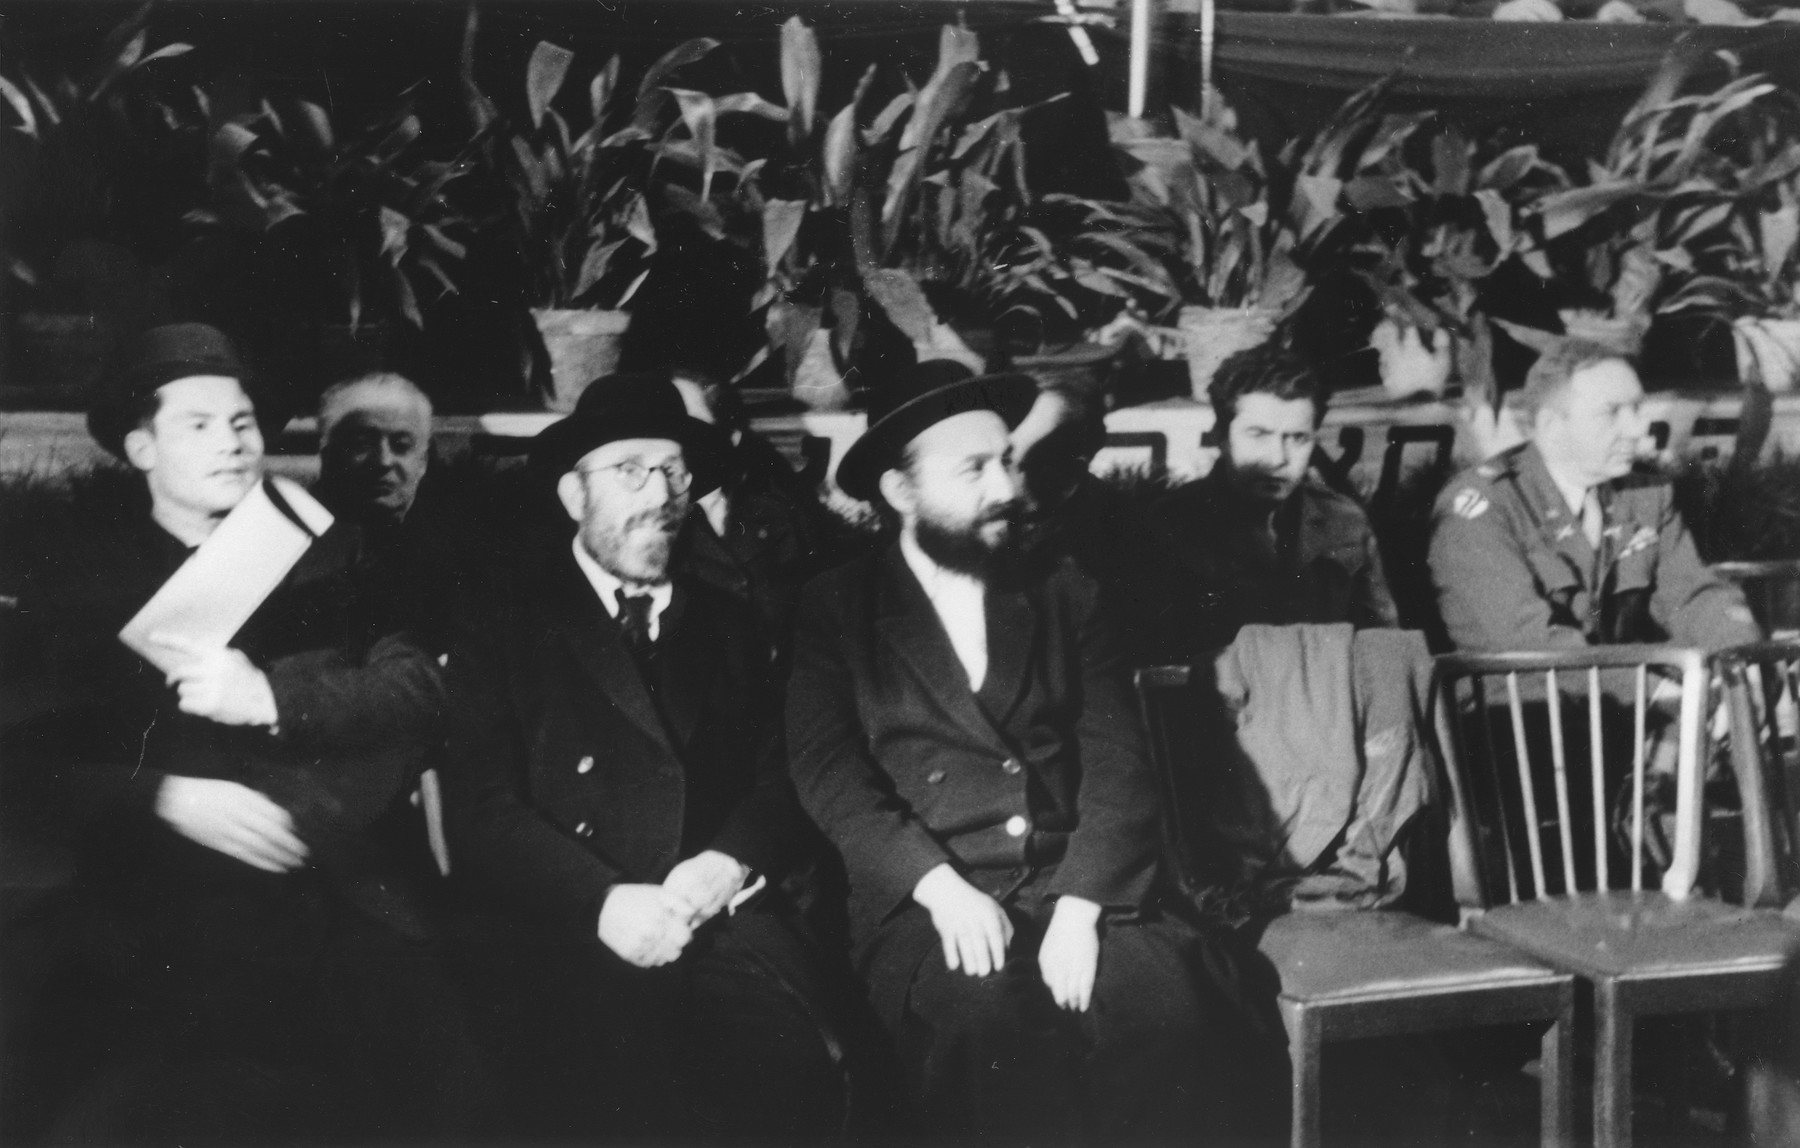 Participants at the second conference of the Central Committee of Liberated Jews in the US Zone of  Germany.  Seated third from the left is Rabbi Samuel Snieg from Kovno.